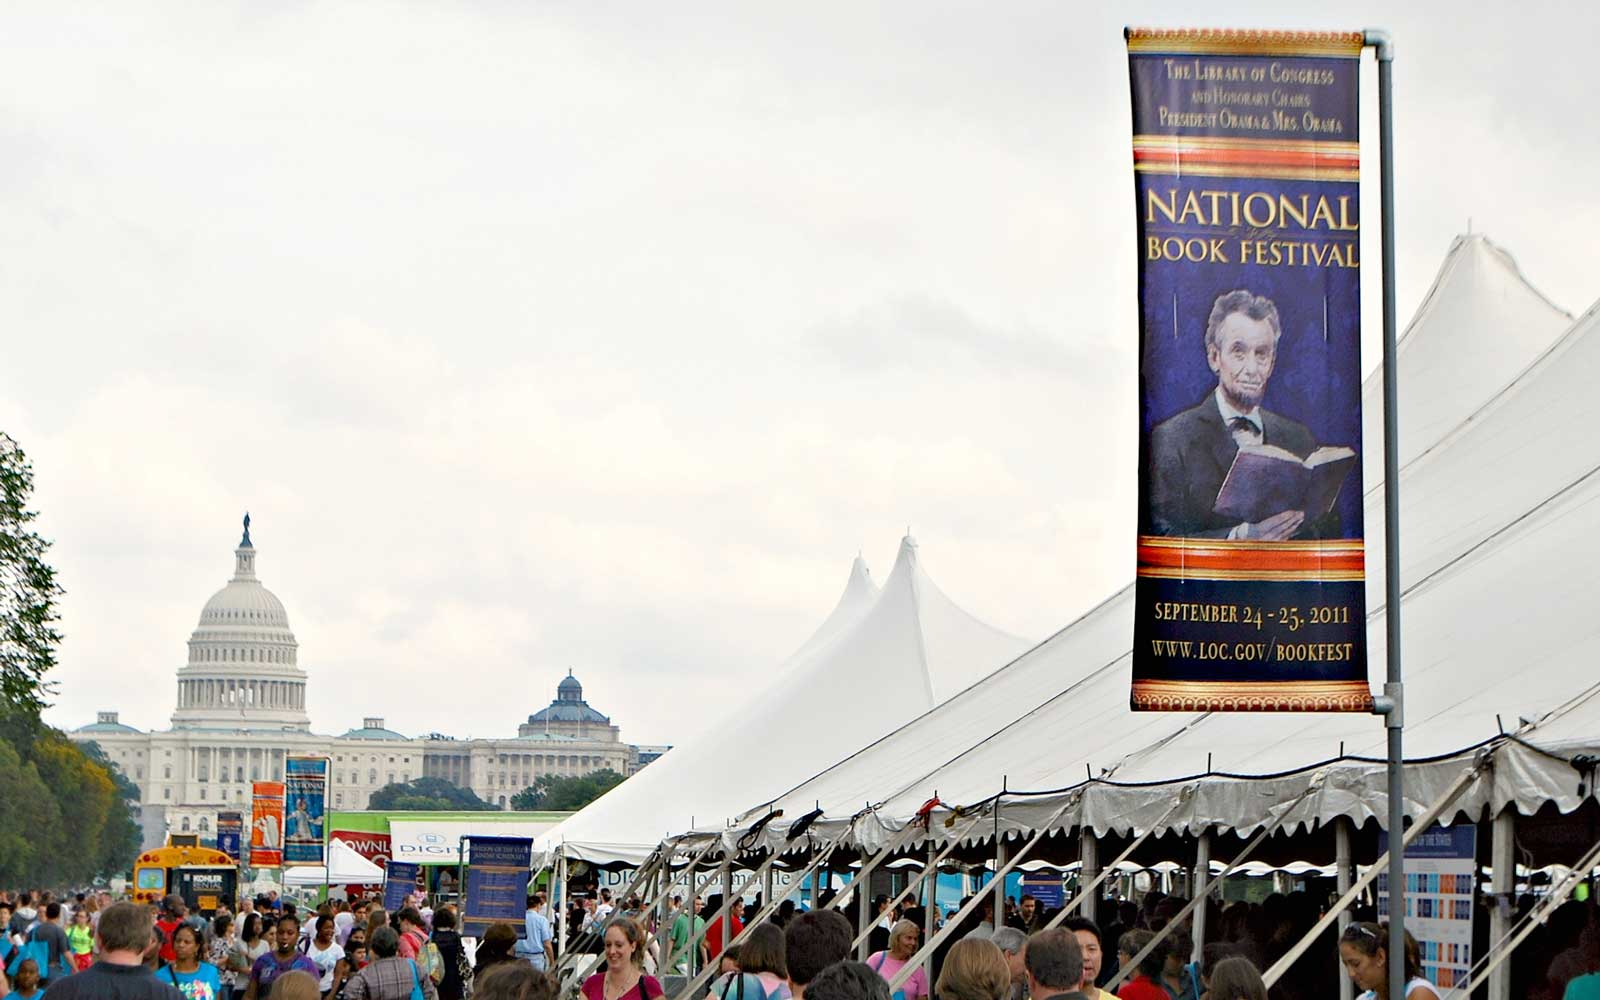 National Book Festival on the National Mall